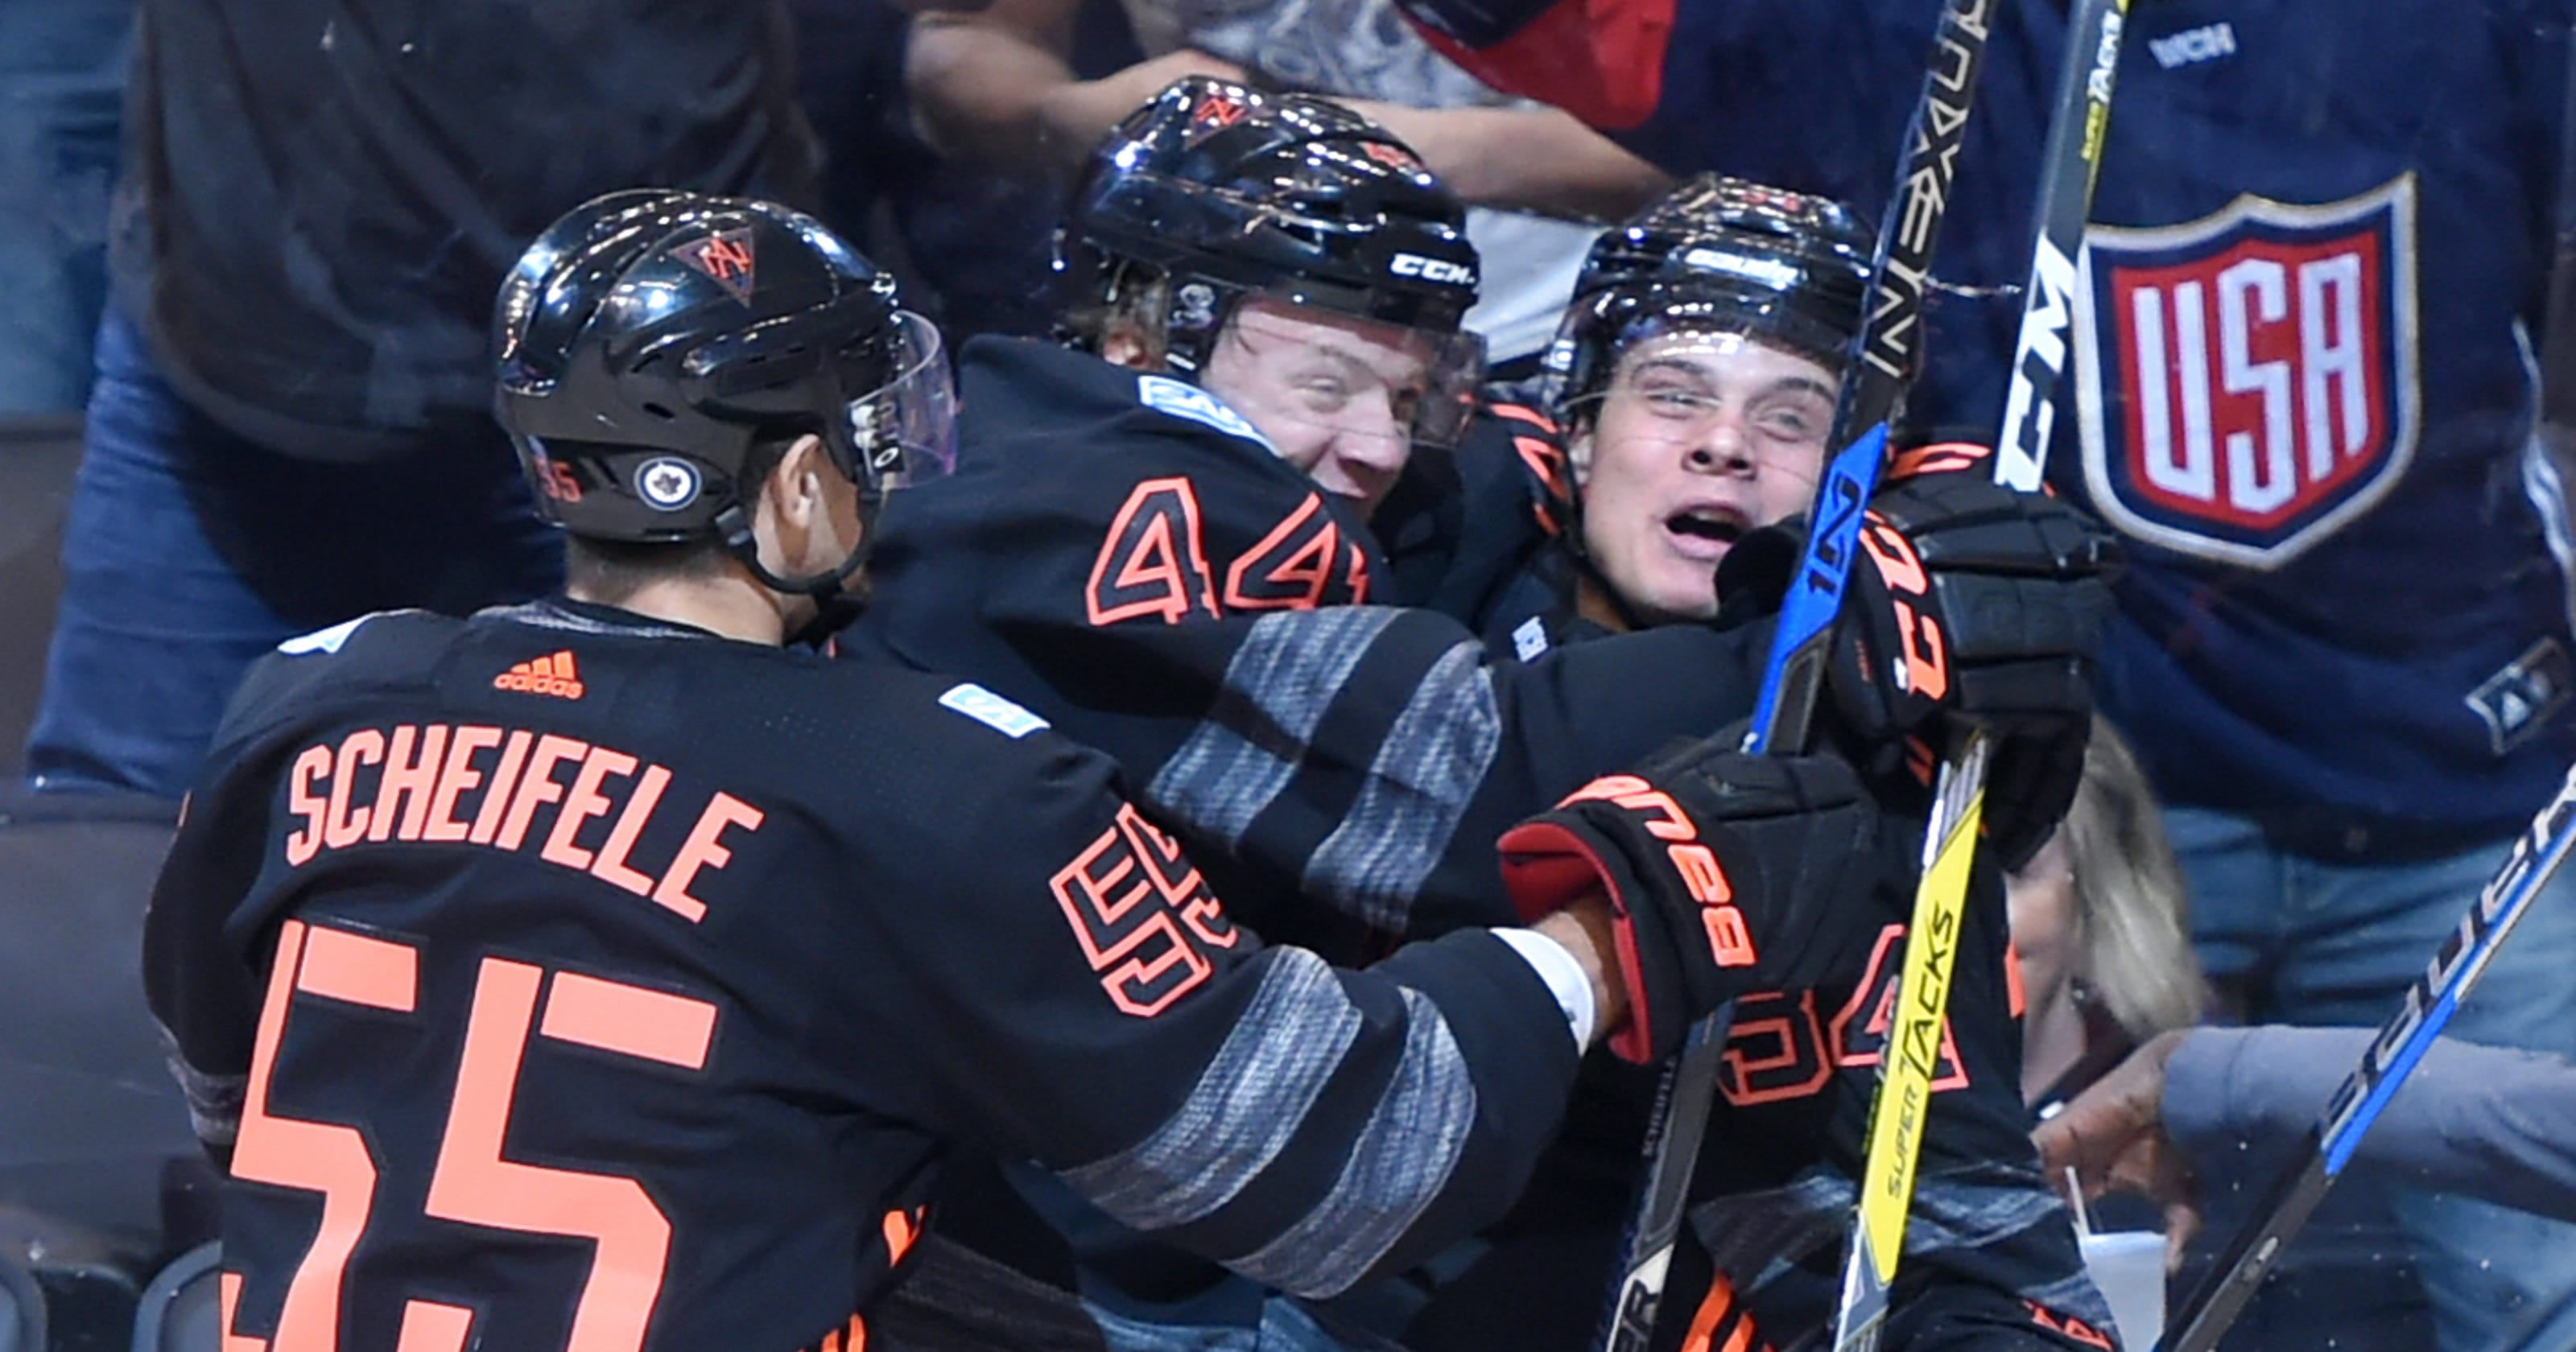 a703de961 Young North American team gives World Cup of Hockey an edge